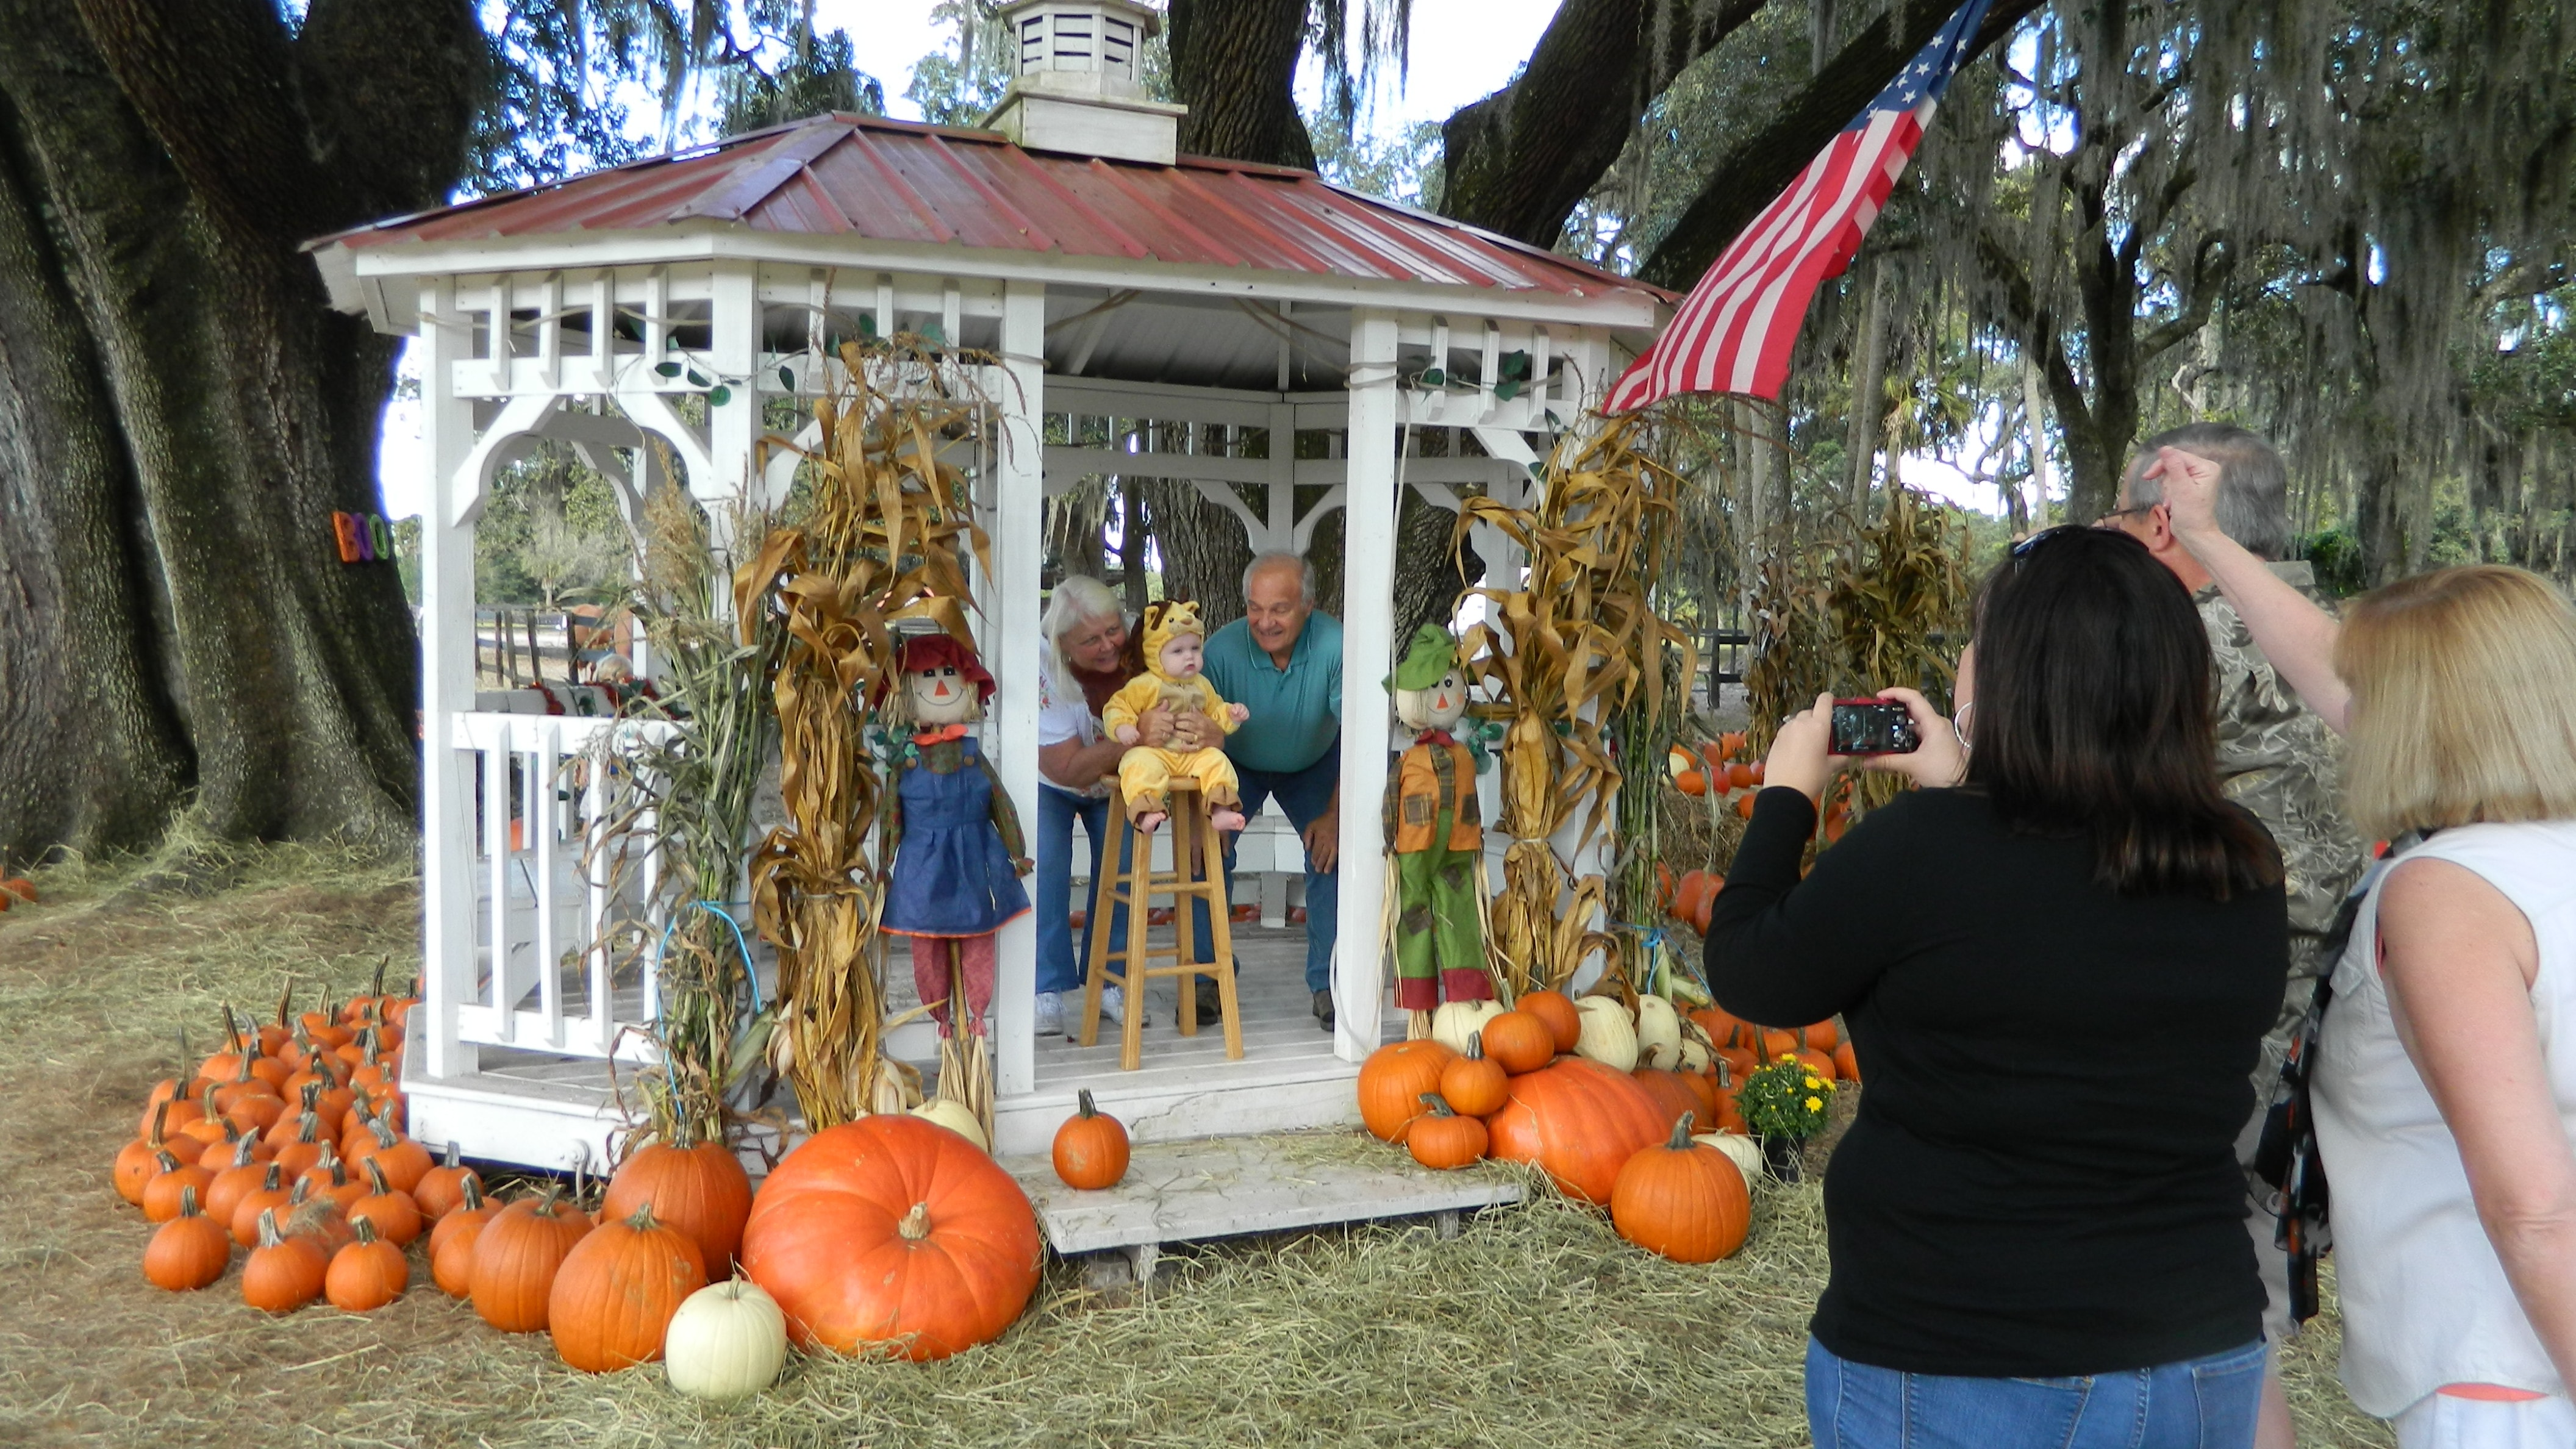 taking photos with pumpkins at pumpkin patch during fall festival on original orlando tours